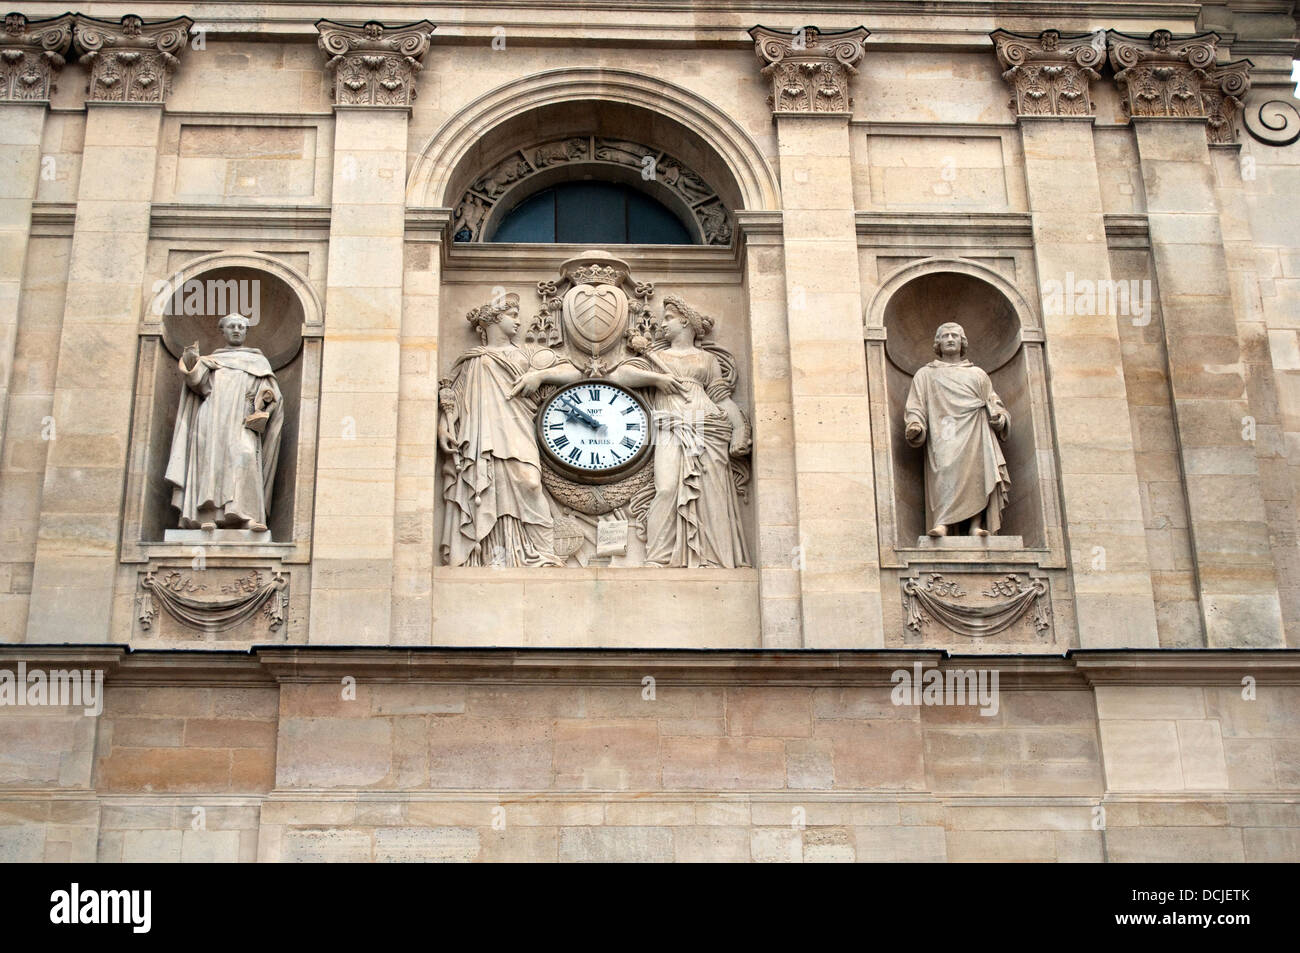 Exterior detail of the buildings of the Sorbonne University, France, Paris, Western Europe. - Stock Image